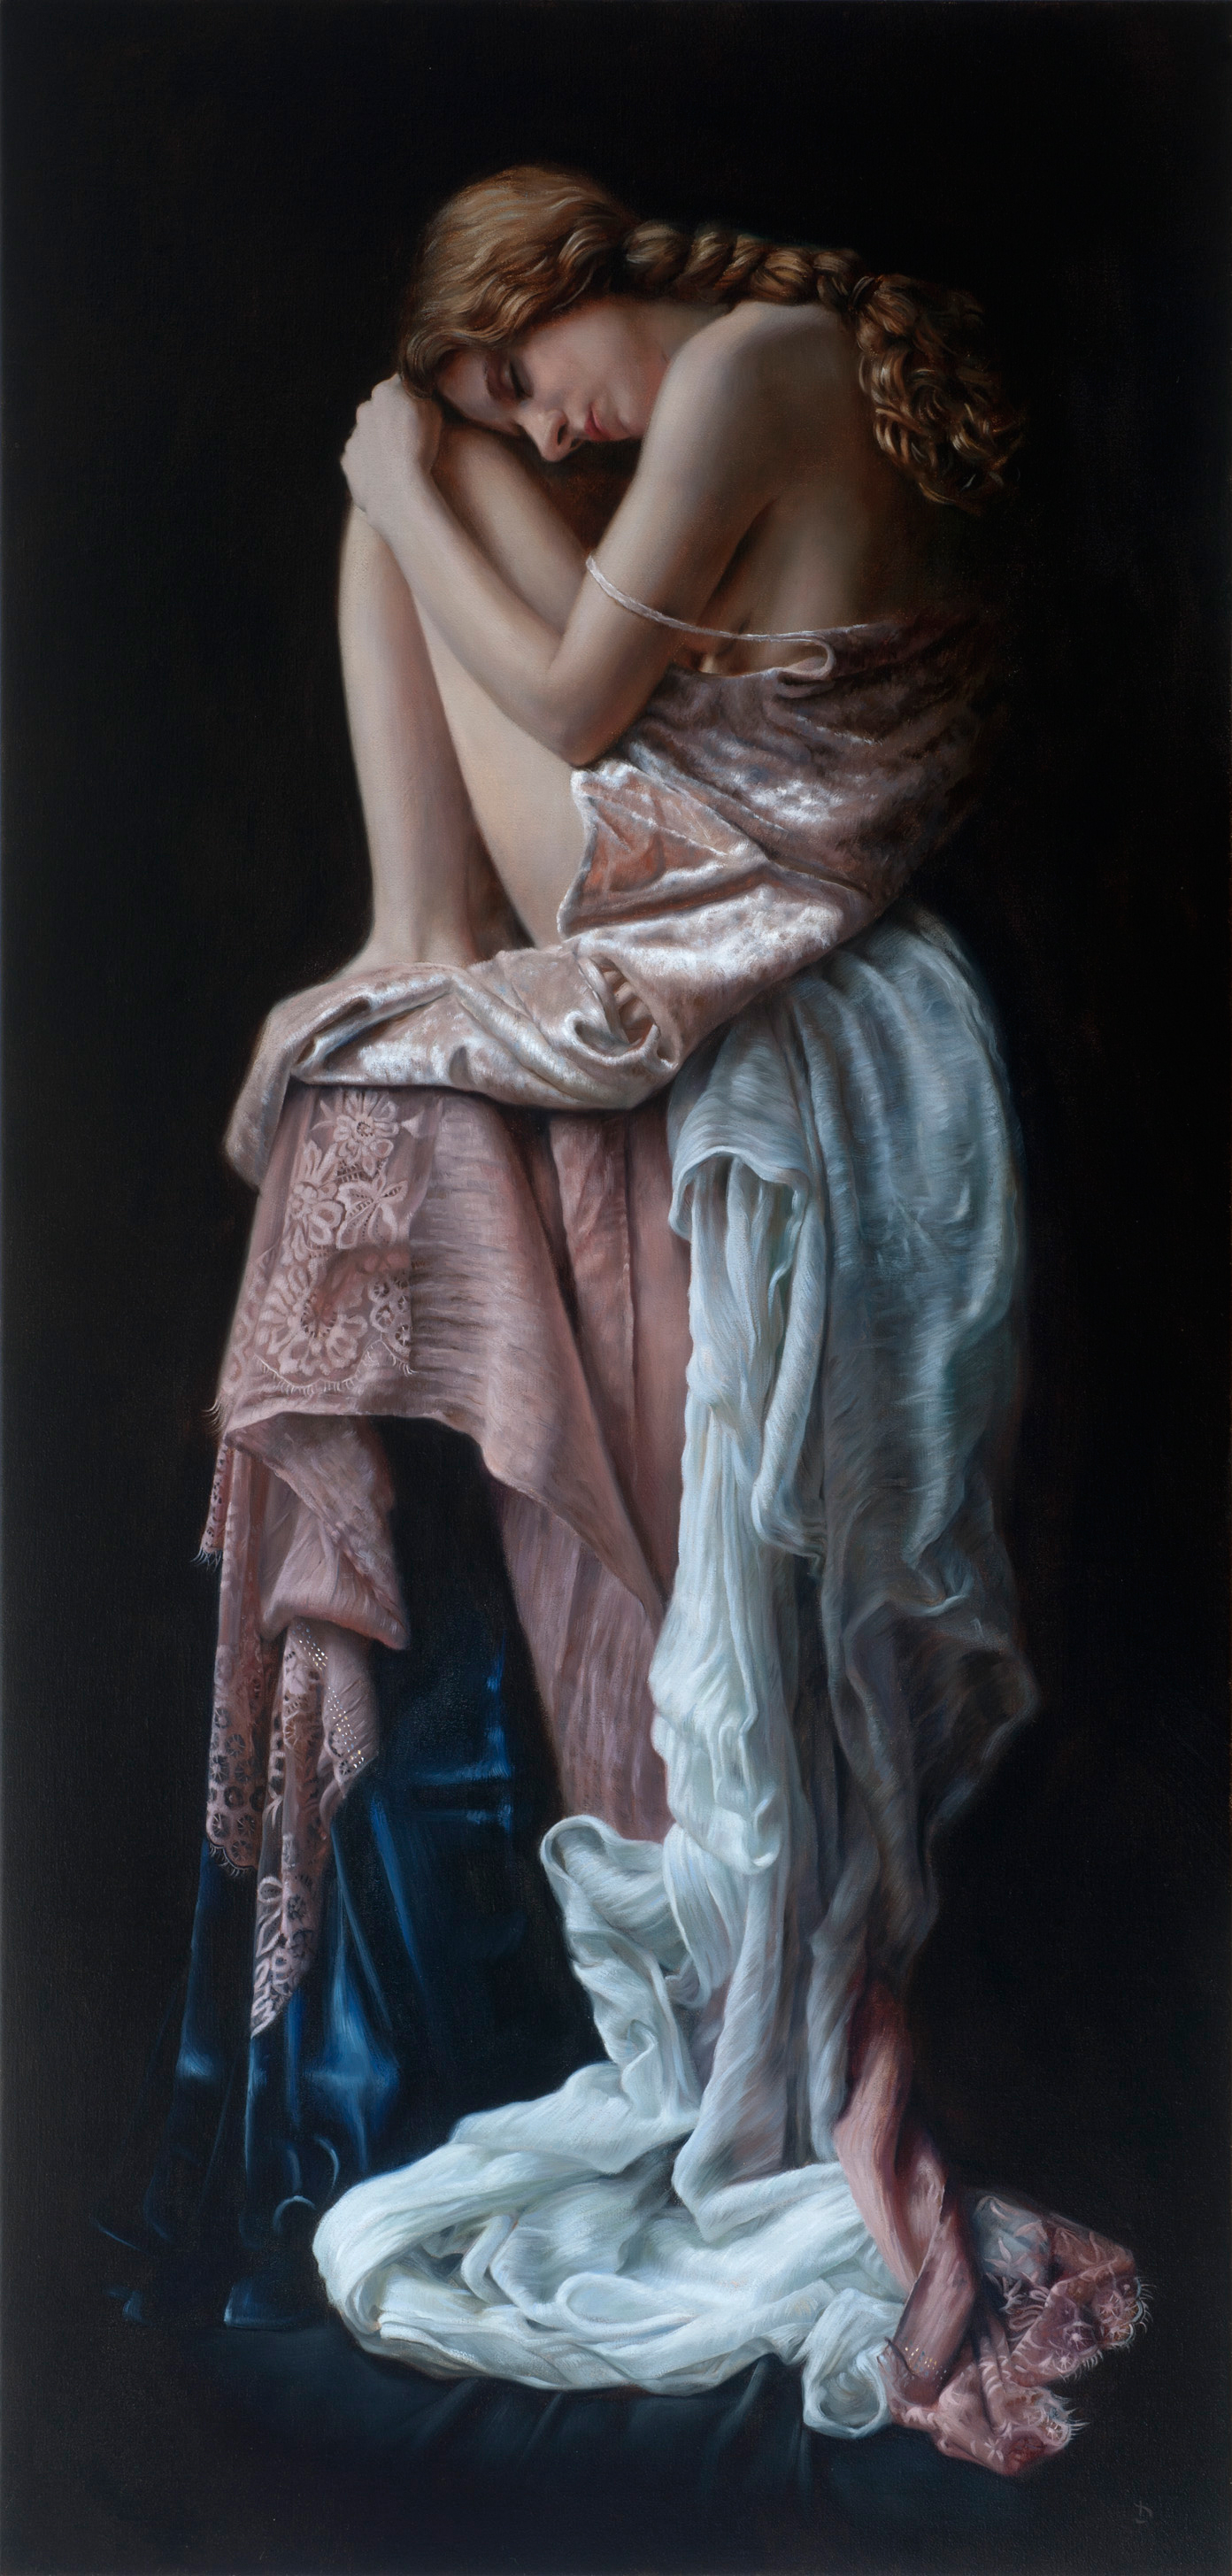 "Breathe, oil on linen, 46"" x 22"", Private Collection.    I'm excited to say that my painting, 'Breathe,' which was awarded Honourable Mention and has also recently sold, will be included in the upcoming 13th International ARC Salon Exhibition!  The exhibition will consist of 89 Contemporary Realist works selected from over an original 3,750 entries from 69 countries and is the most prestigious realist art competition in the Americas and perhaps the world.  The ARC Salon Exhibition will be on view at the Salmagundi Club, 47 Fifth Ave., New York, NY from September 21st—October 2nd, 2018 with the public opening event on Saturday, September 22nd from 11am to 3pm. Entry is free. The exhibition will then travel to Sotheby's, Los Angeles where it will be on view from December 4th—December 13th, 2018 with the opening reception on December 4th from 6pm to 8pm. The show will then travel to the MEAM Museum, Barcelona, Spain from February 8th—March 31st, 2019, with the opening event and award ceremony starting at 7pm on February 8th. To learn more, go to  https://www.artrenewal.org/13thARCSalon/Home/Exhibition"